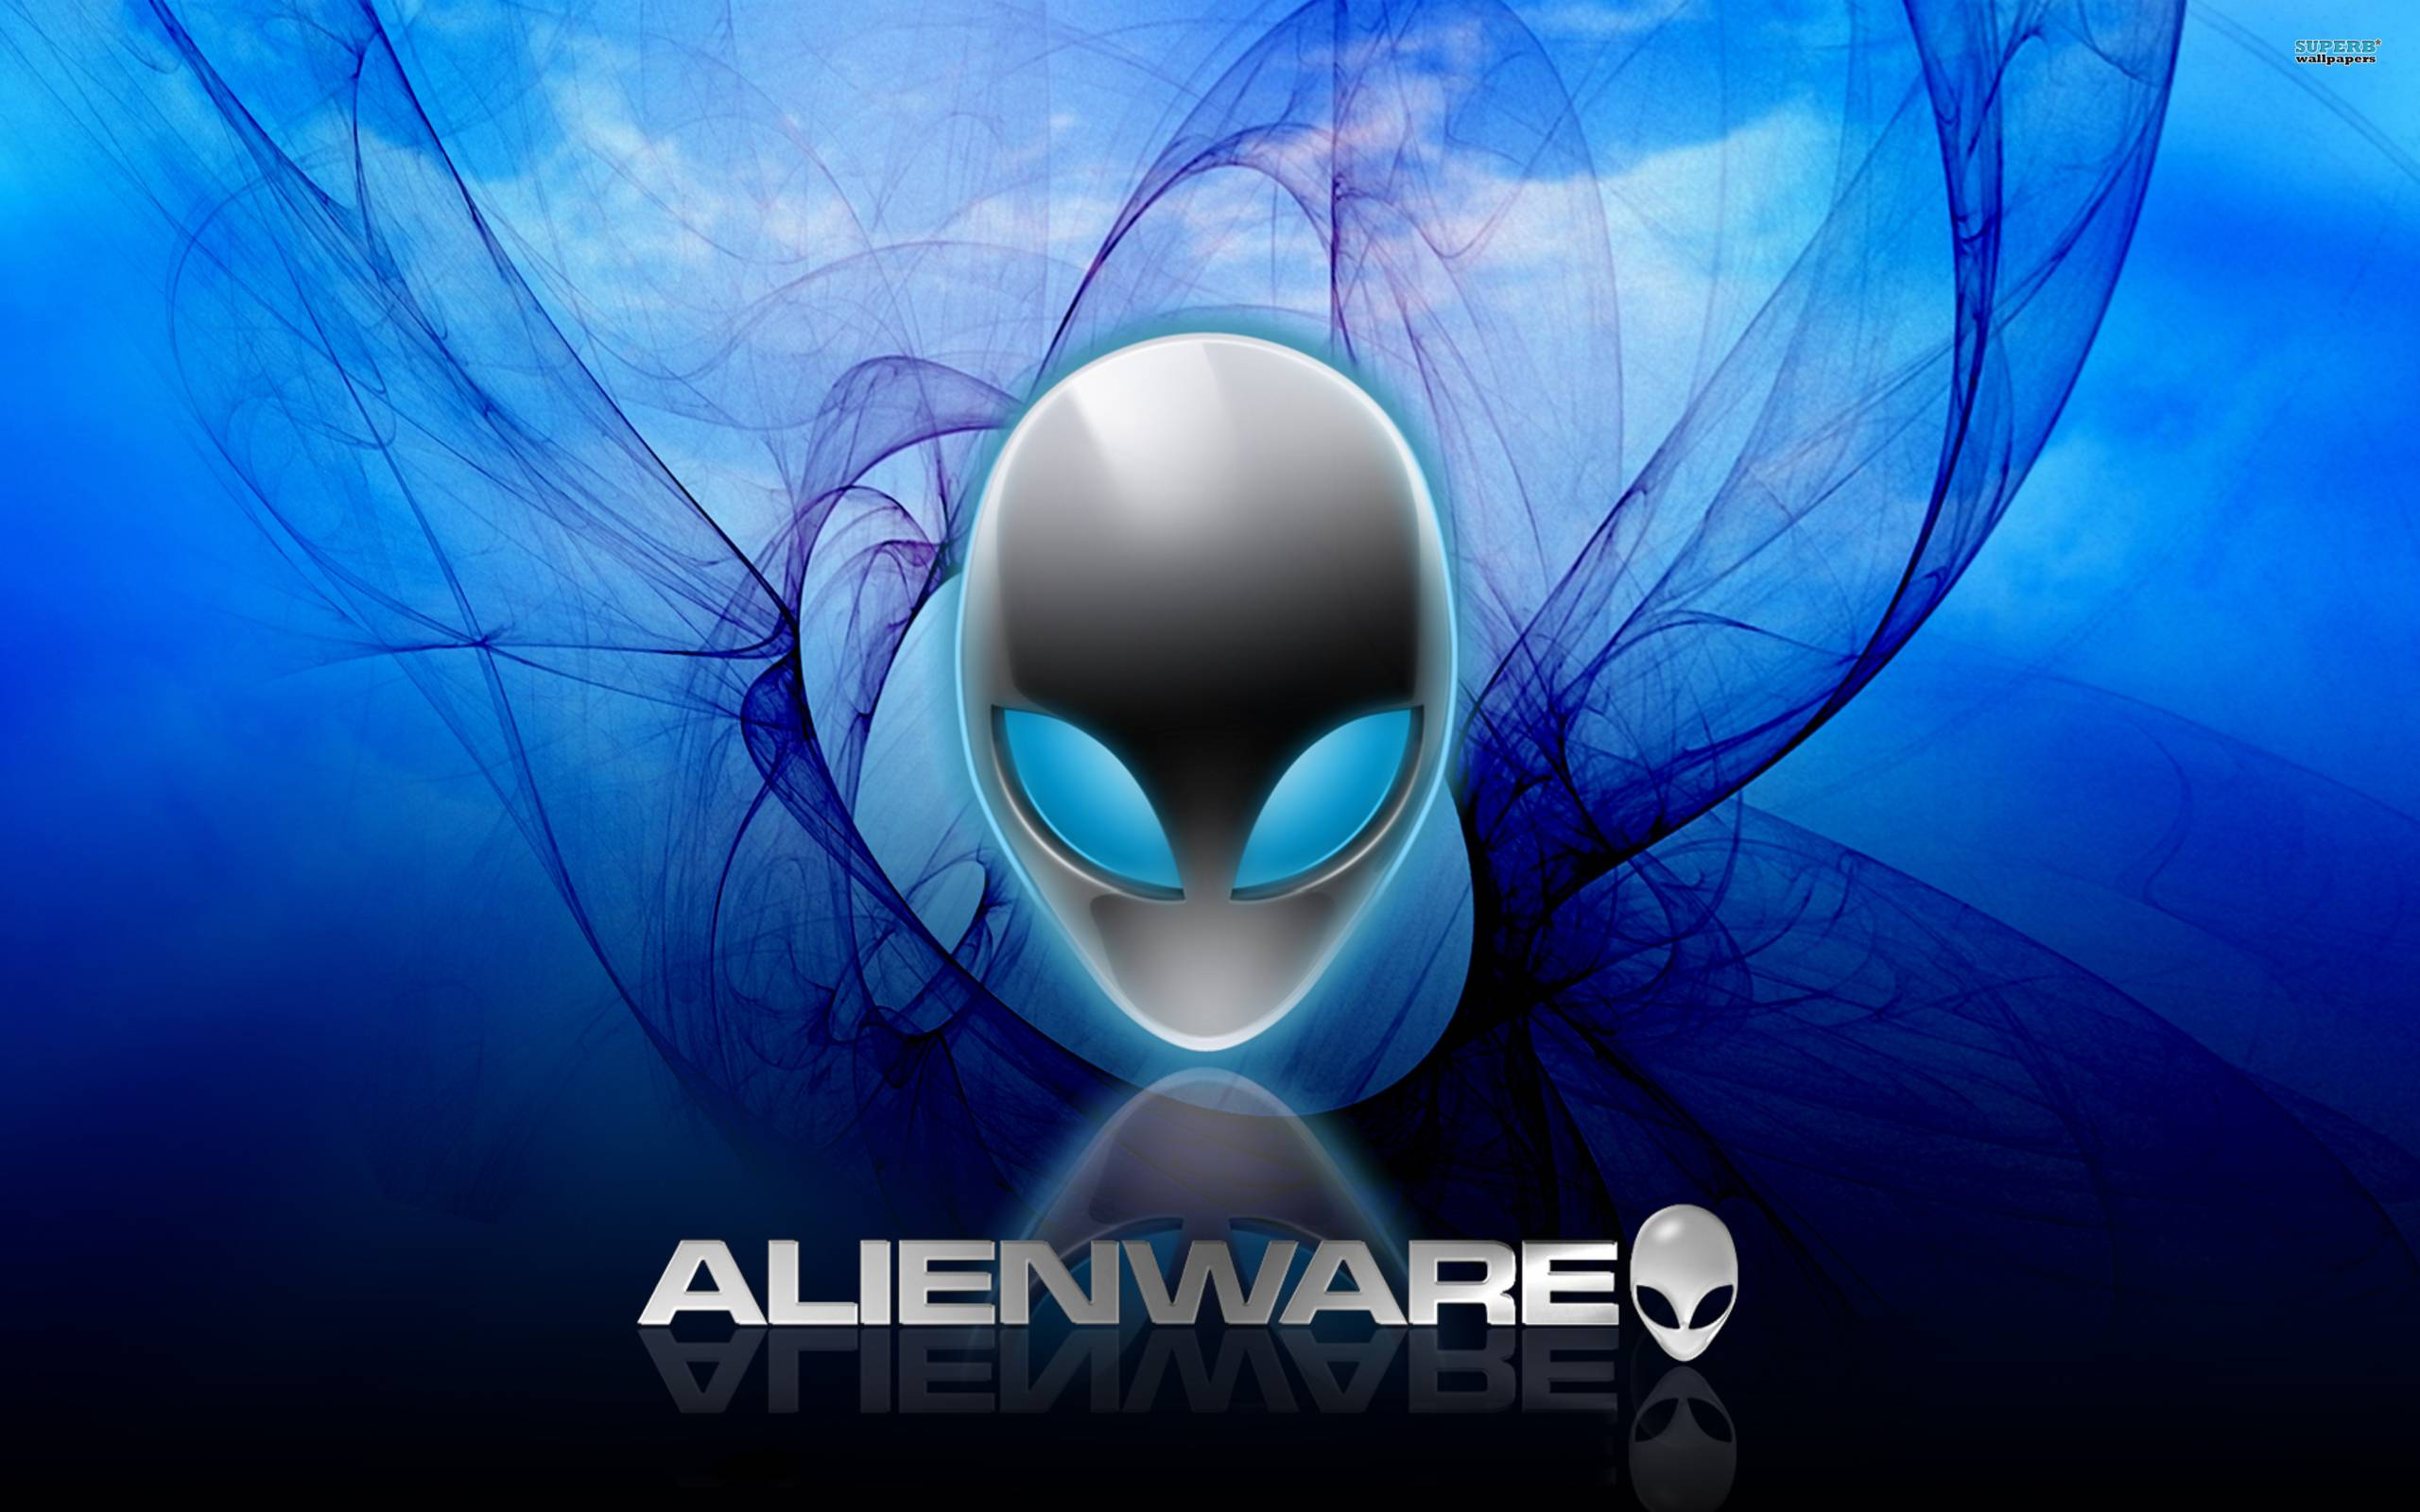 Alienware Desktop Wallpapers - Wallpaper Cave